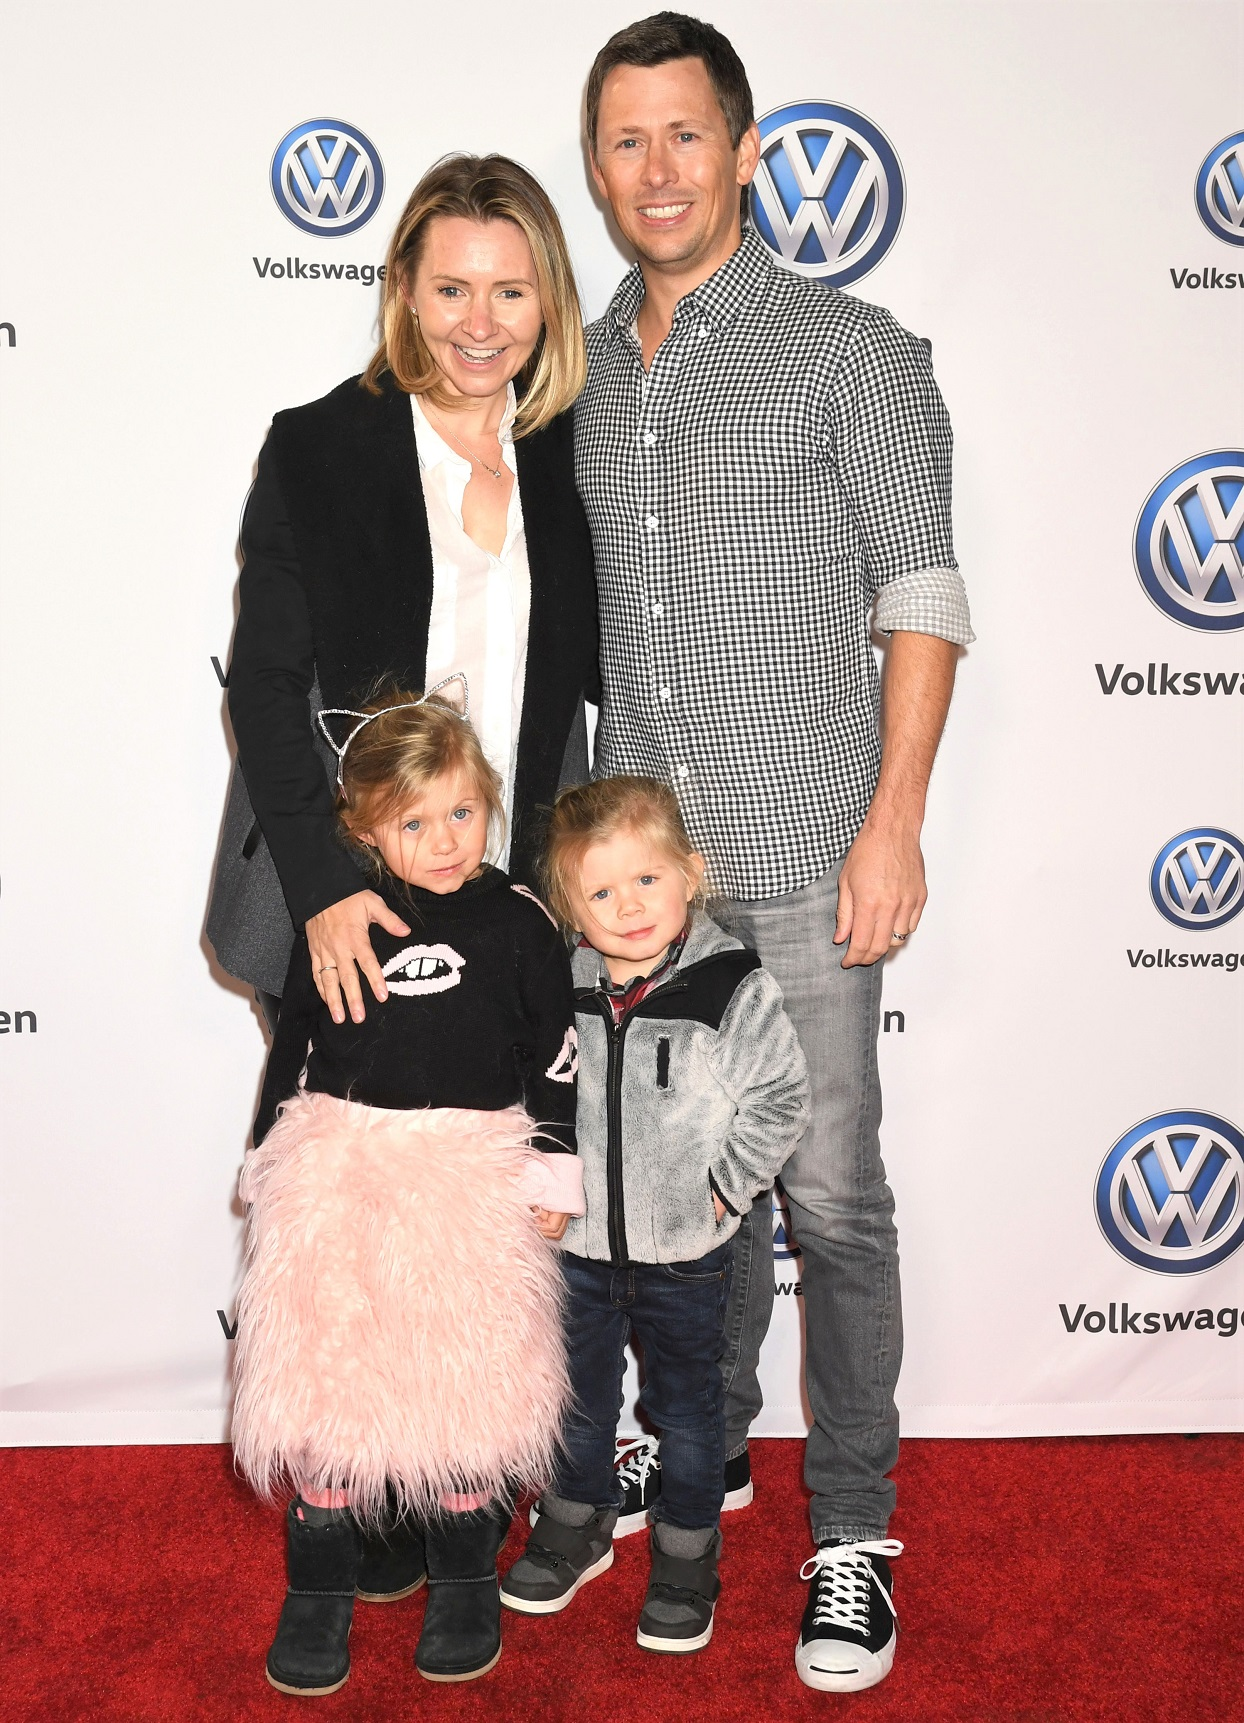 Beverley Mitchell and Family on Red Carpet